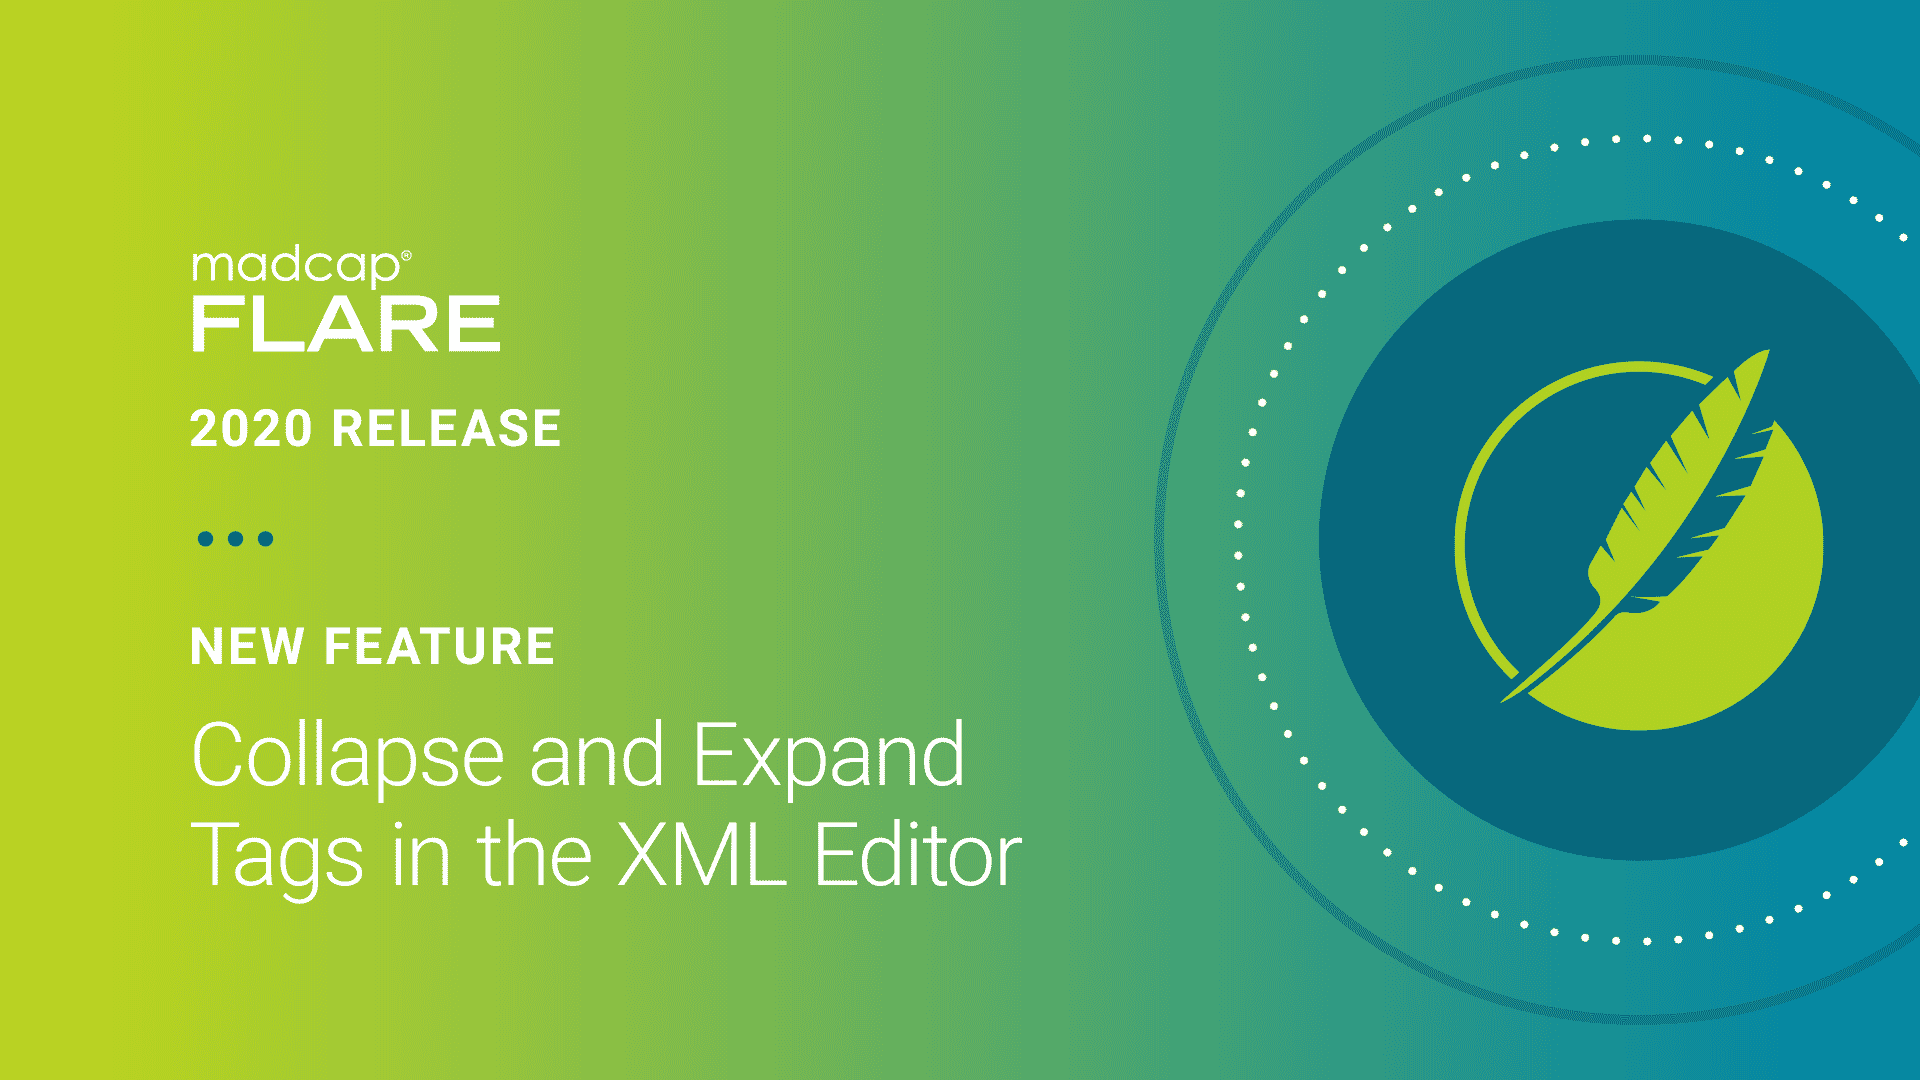 MadCap Flare 2020 - New Feature: Collapse and Expand Tags in the XML Editor